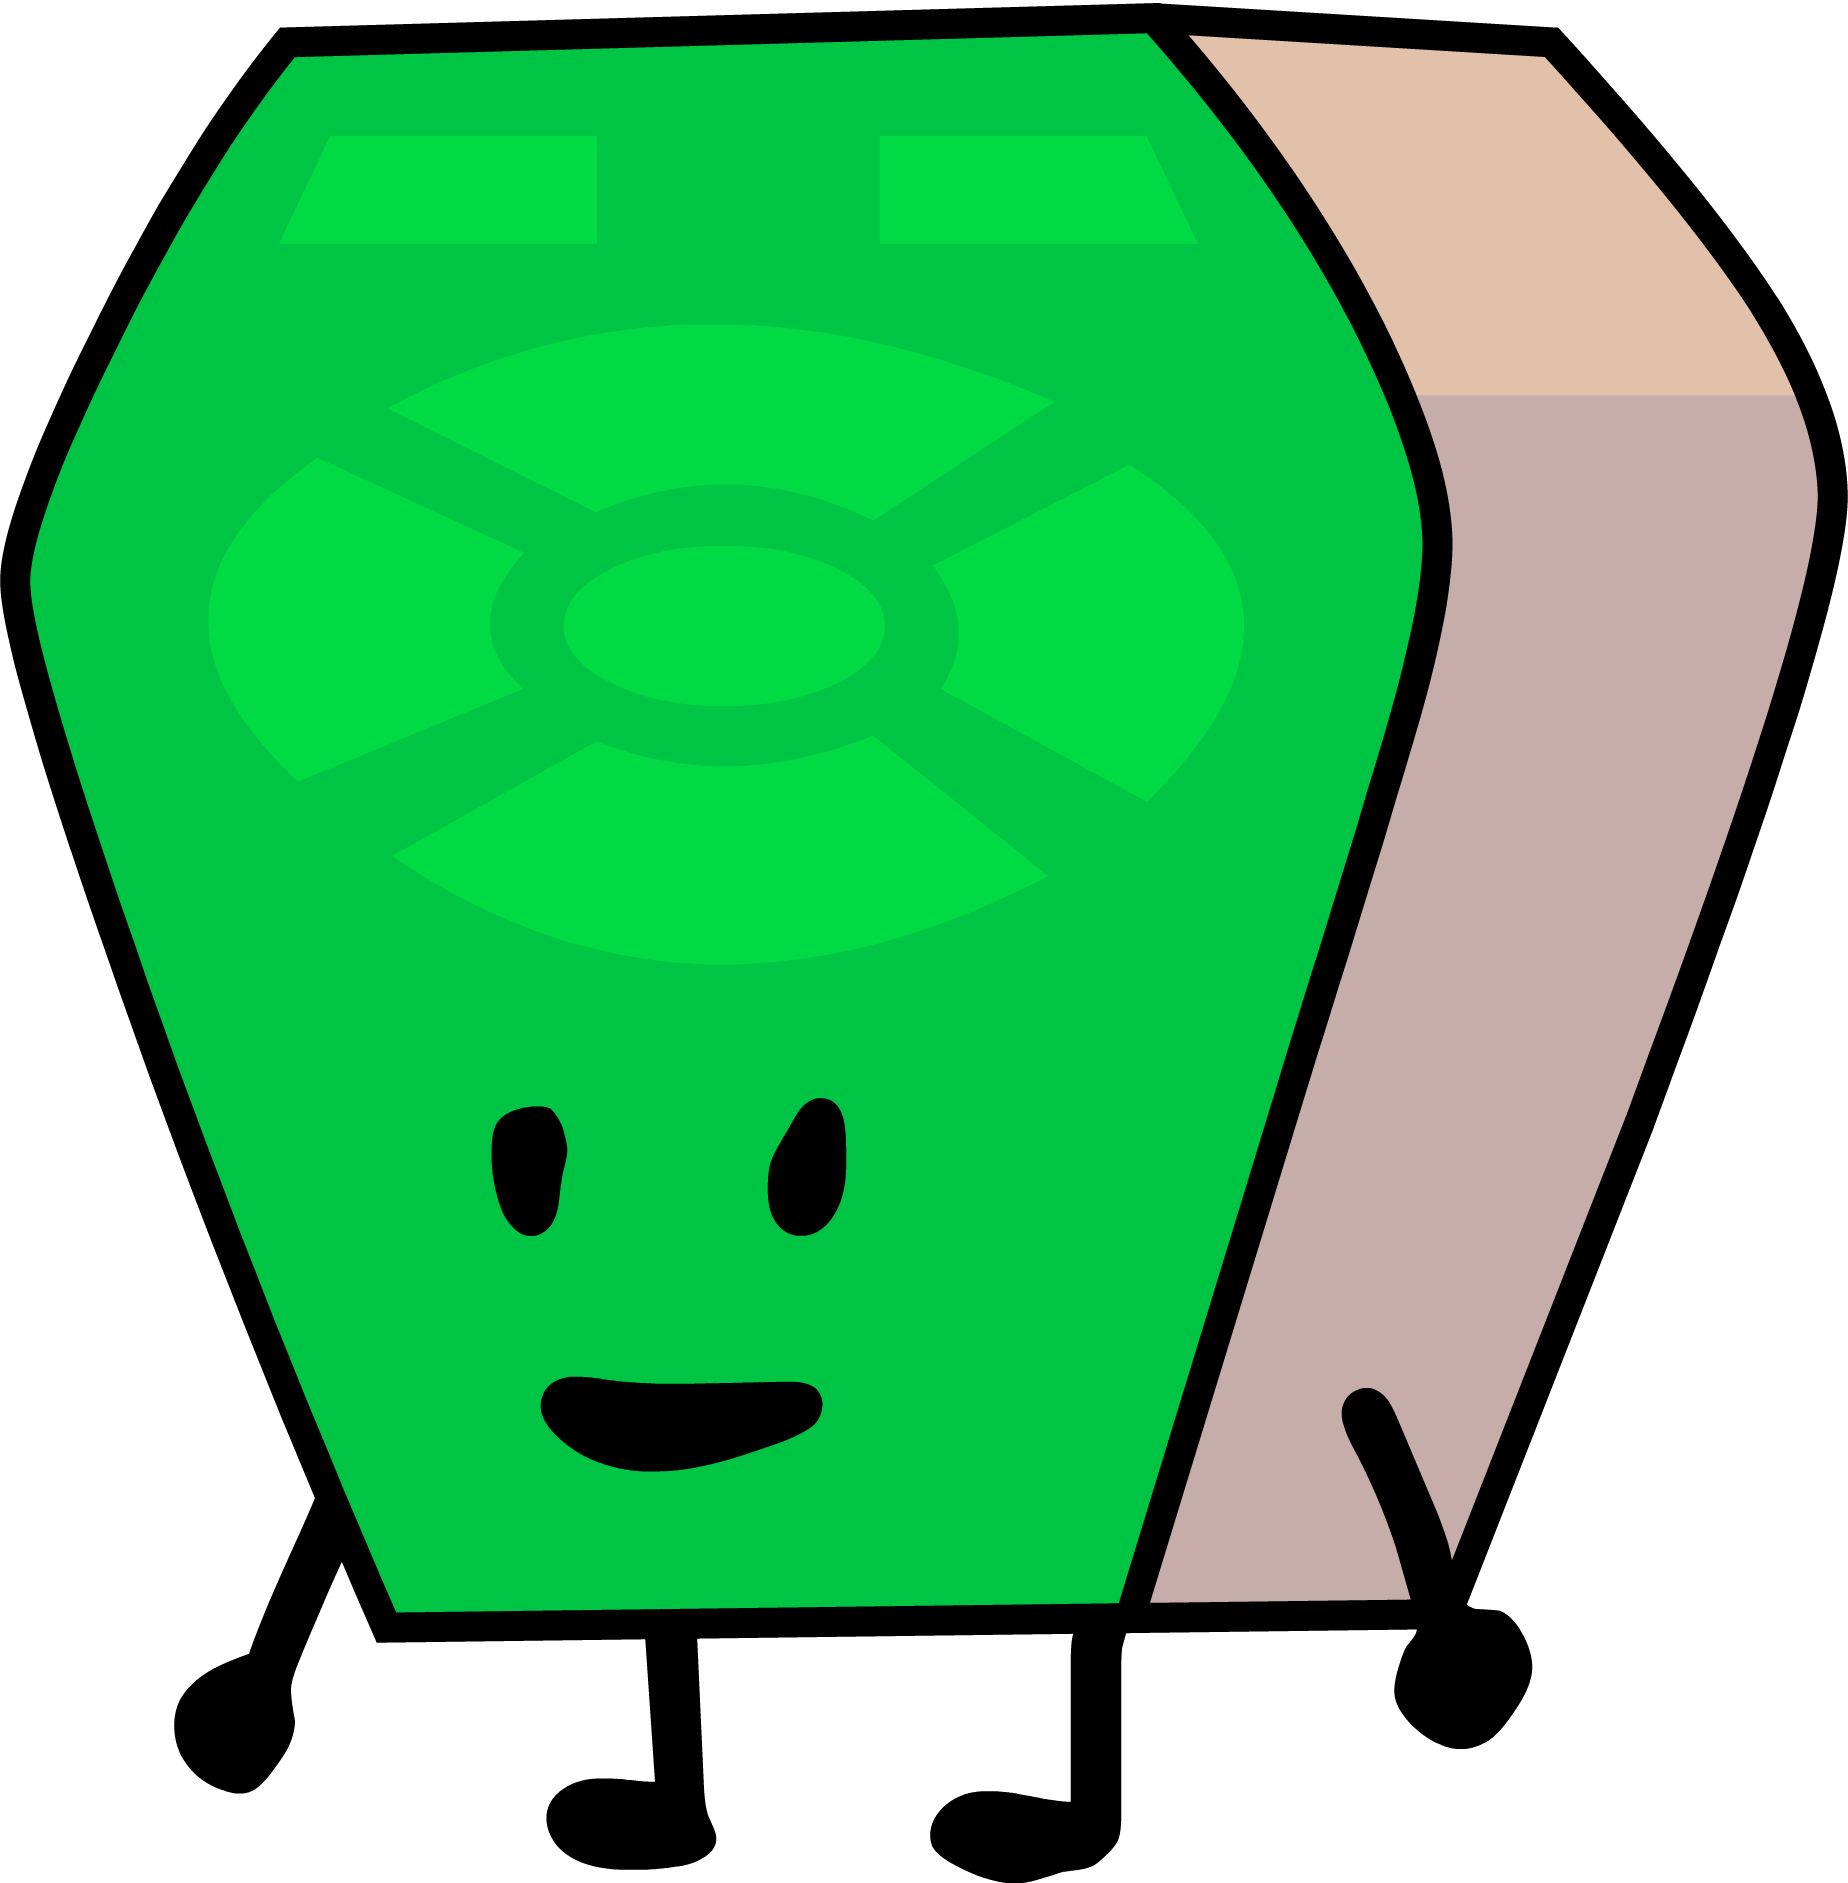 Transparent hole battle for dream island. Image retree png wiki